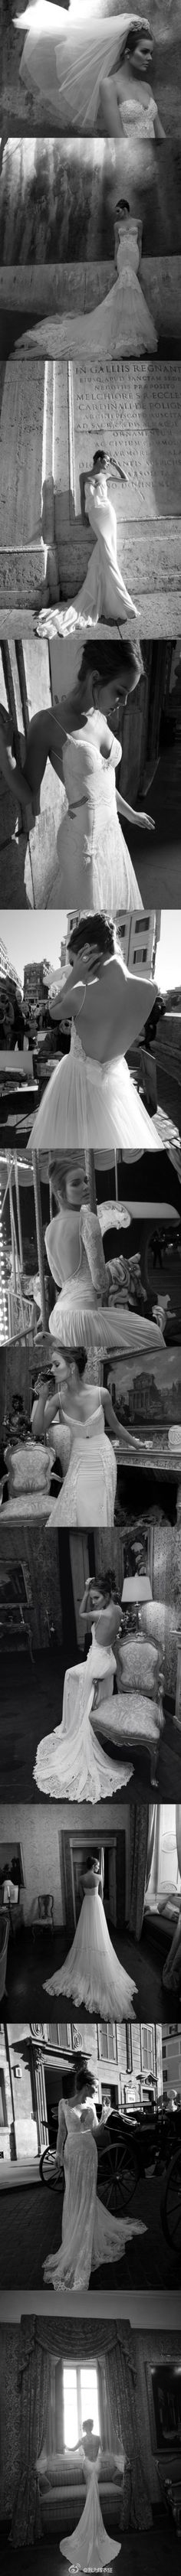 www.weddbook.com  Amazing Wedding Dresses